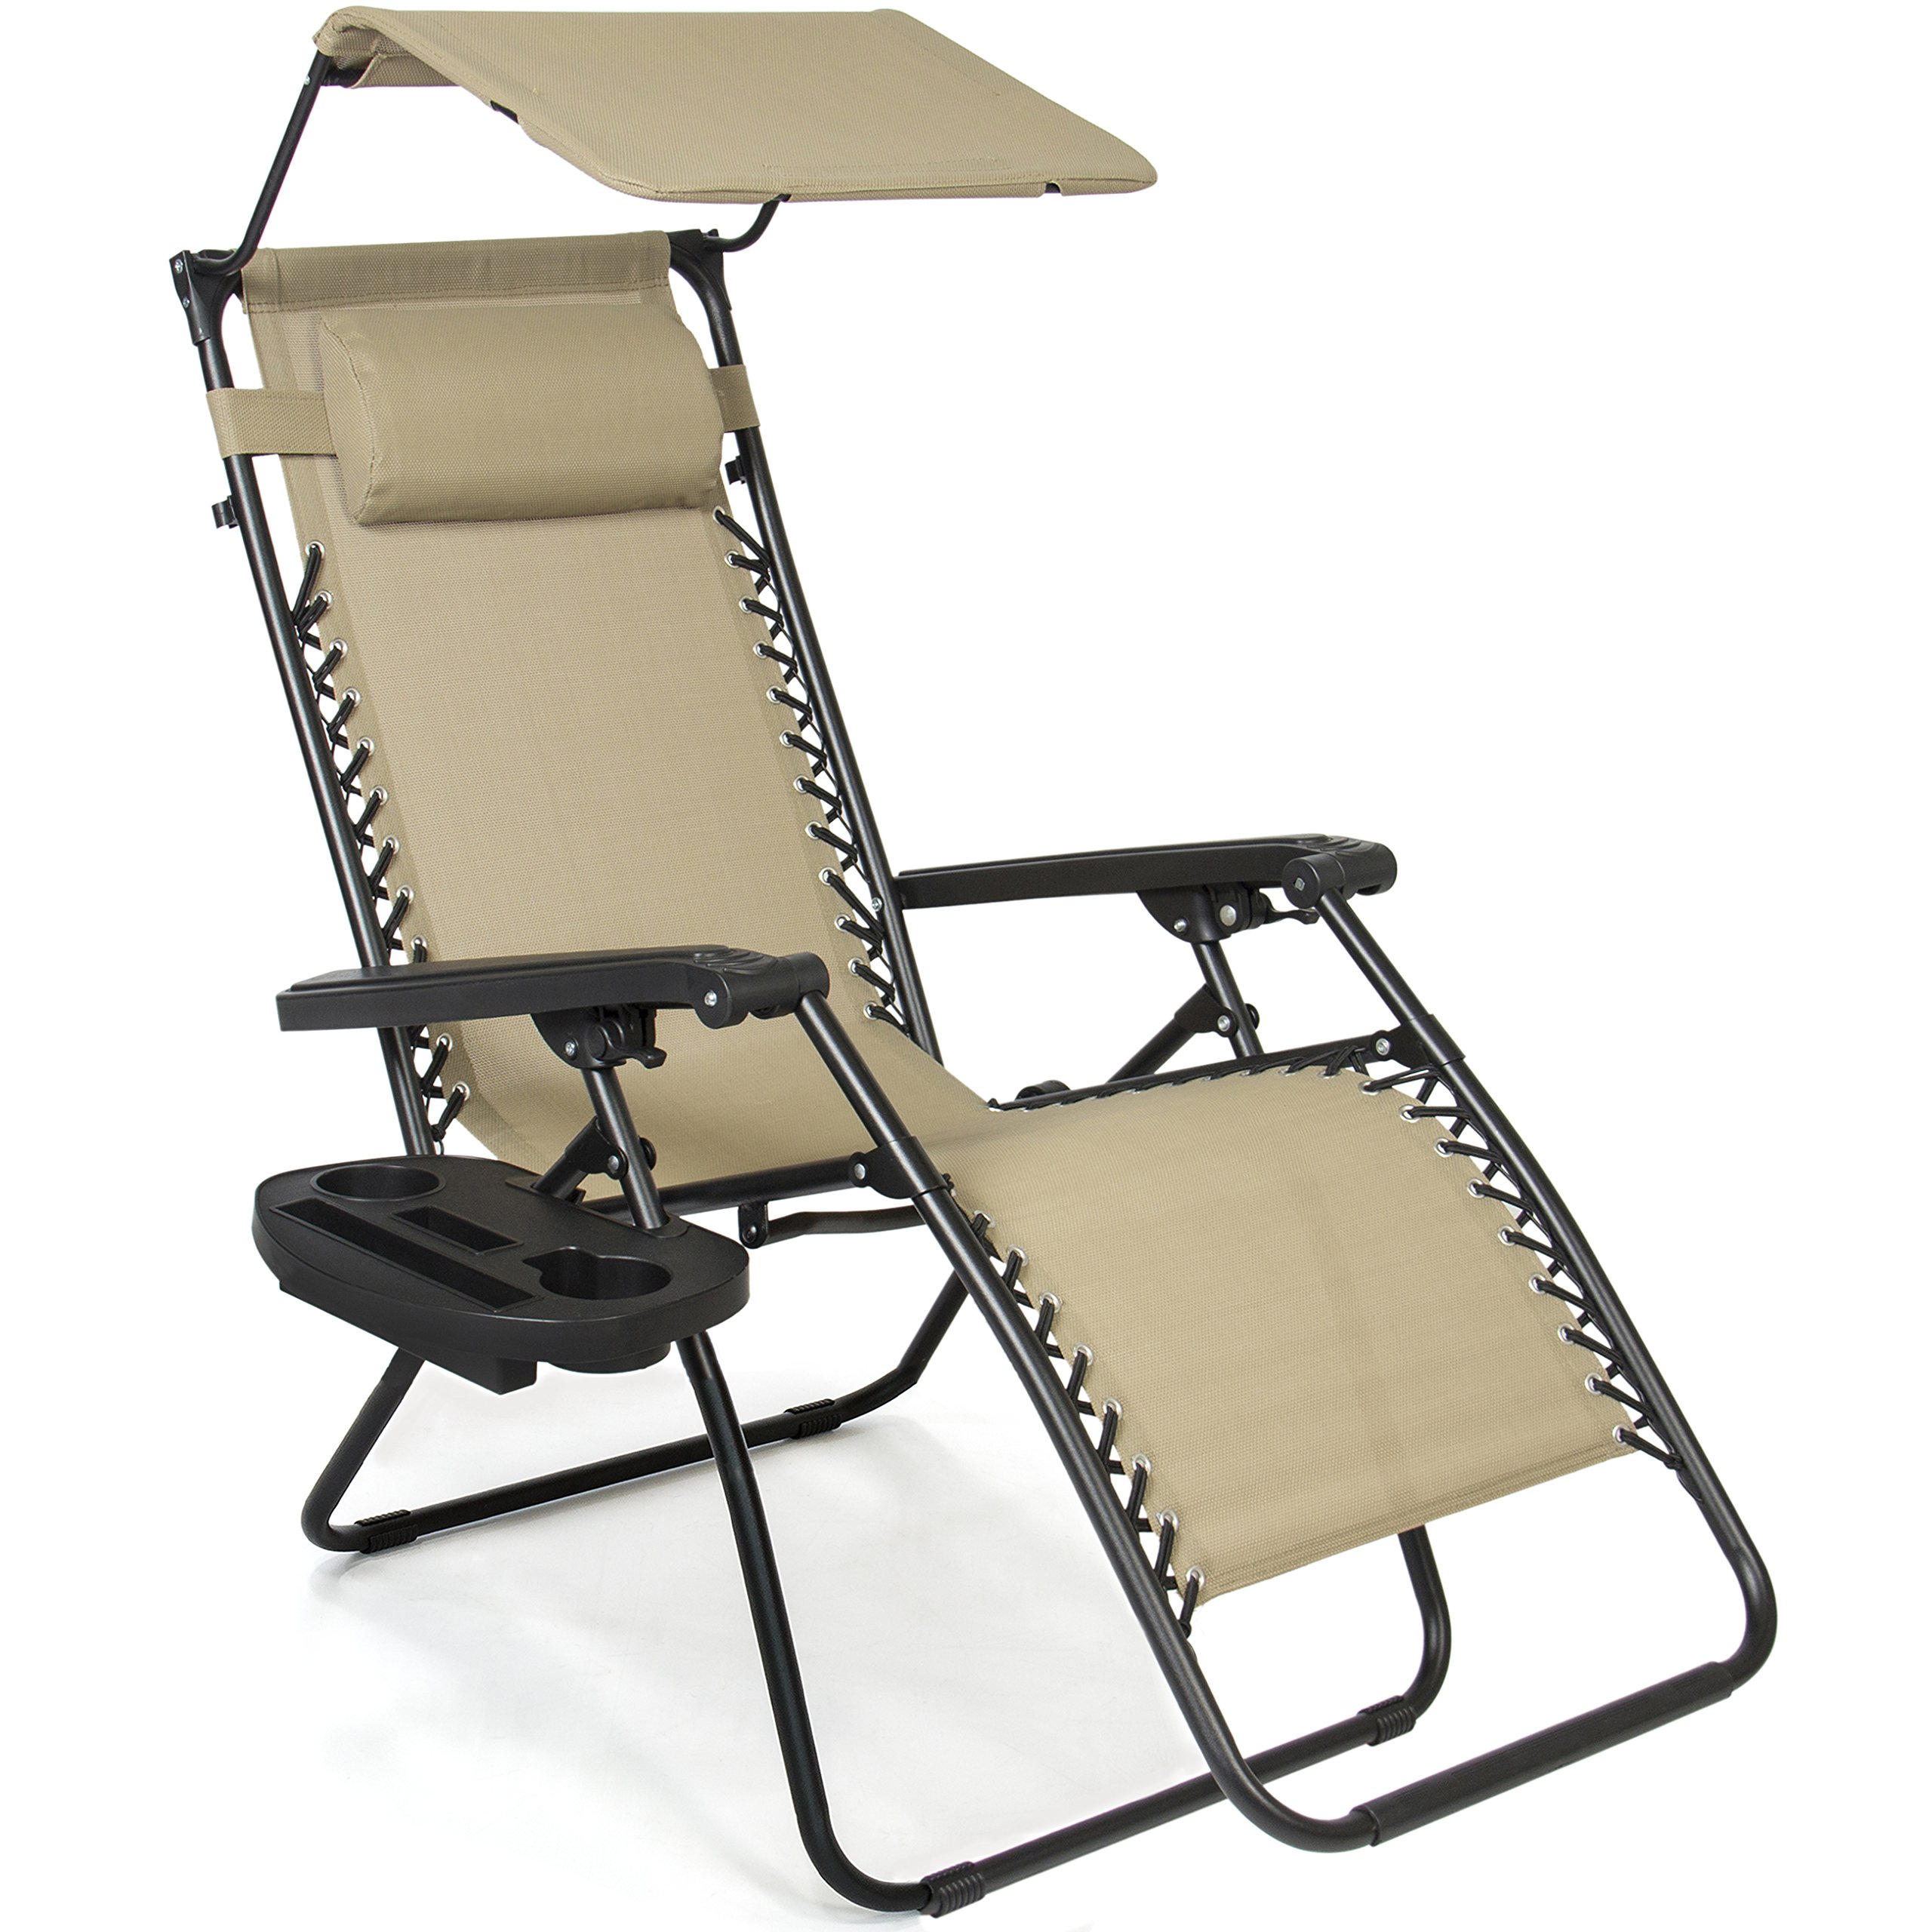 Best Choice Products Folding Zero Gravity Recliner Lounge Chair w/Canopy Shade & Magazine Cup Holder (Tan)